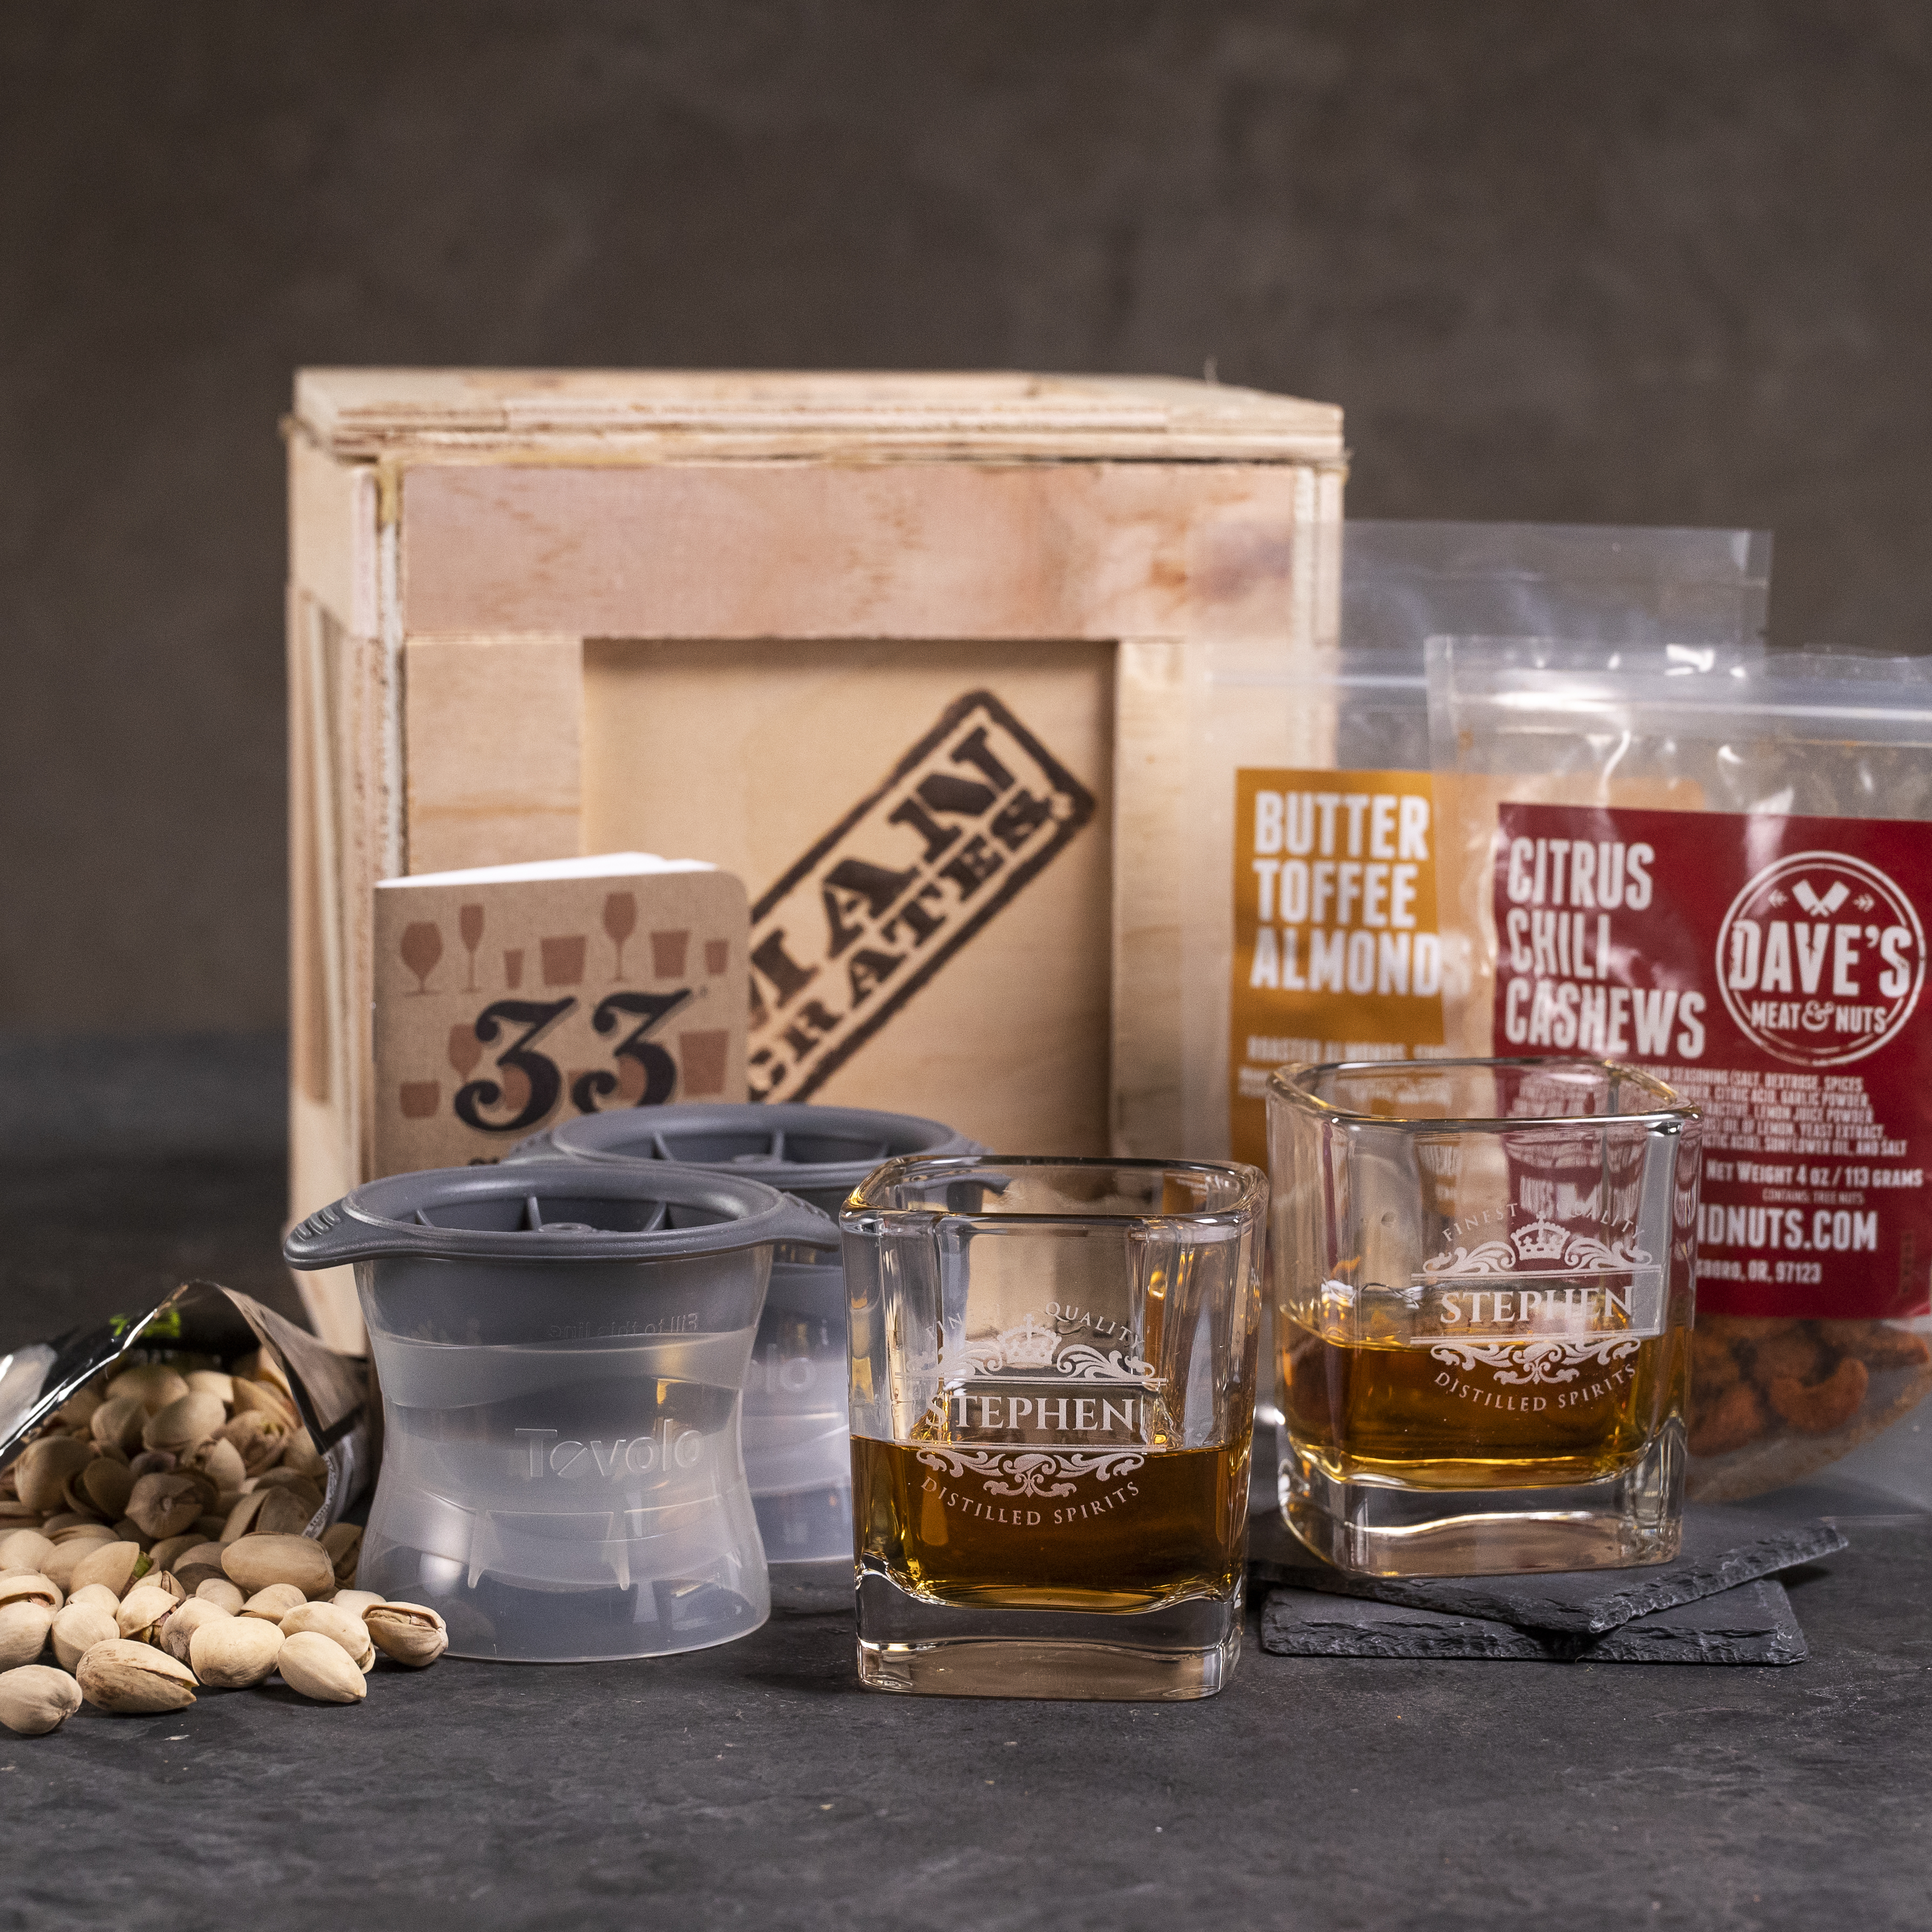 Front view of personalized glassware, snacks, and ice molds with a crate.